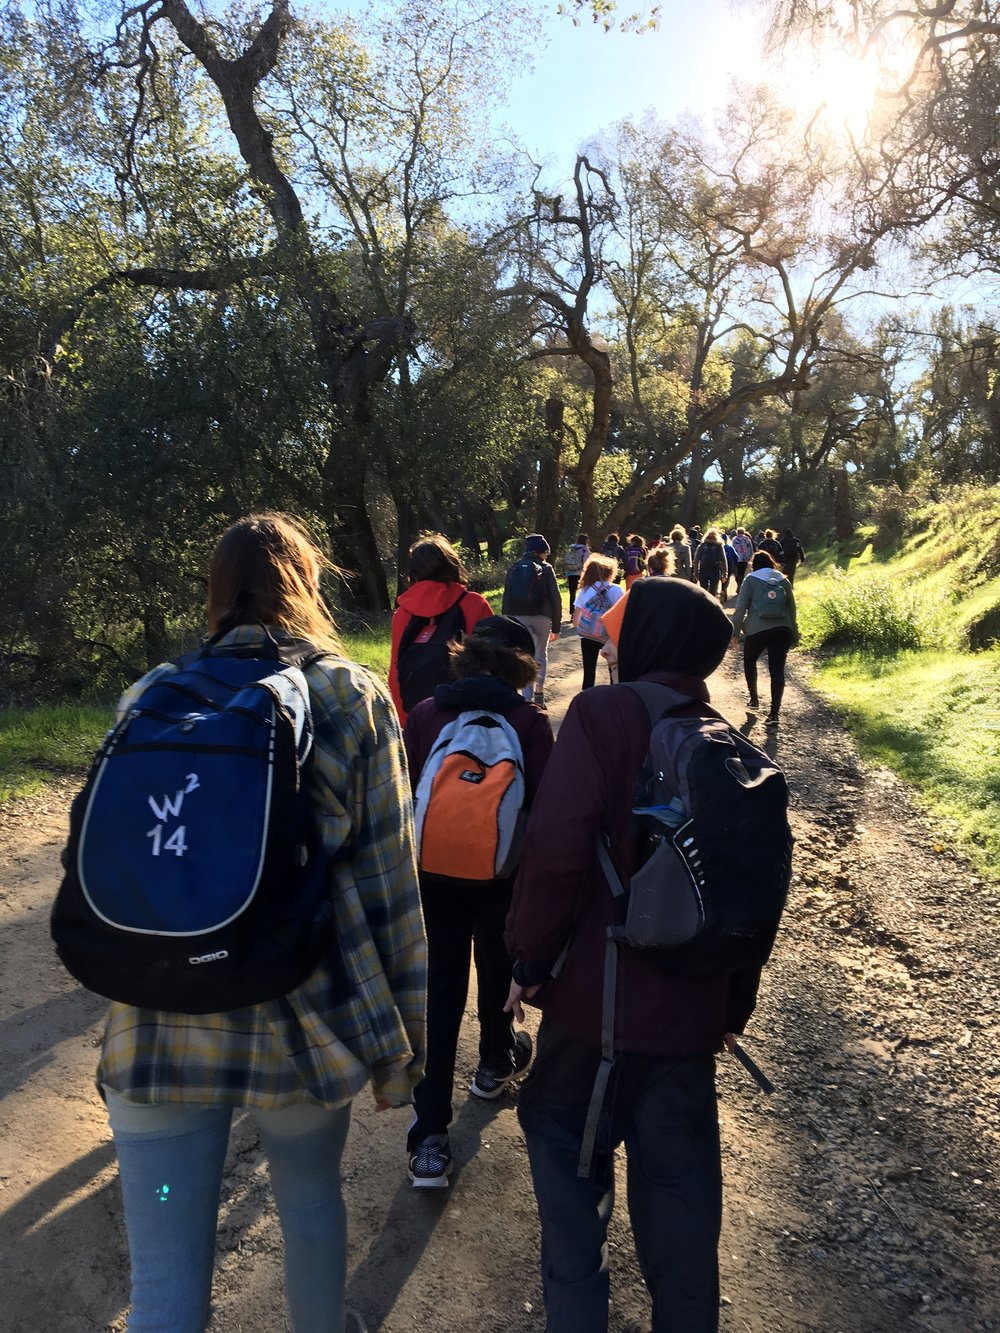 Camping provides students the chance to plan, pack, budget, buy, cook, clean and learn how to coexist peaceably.